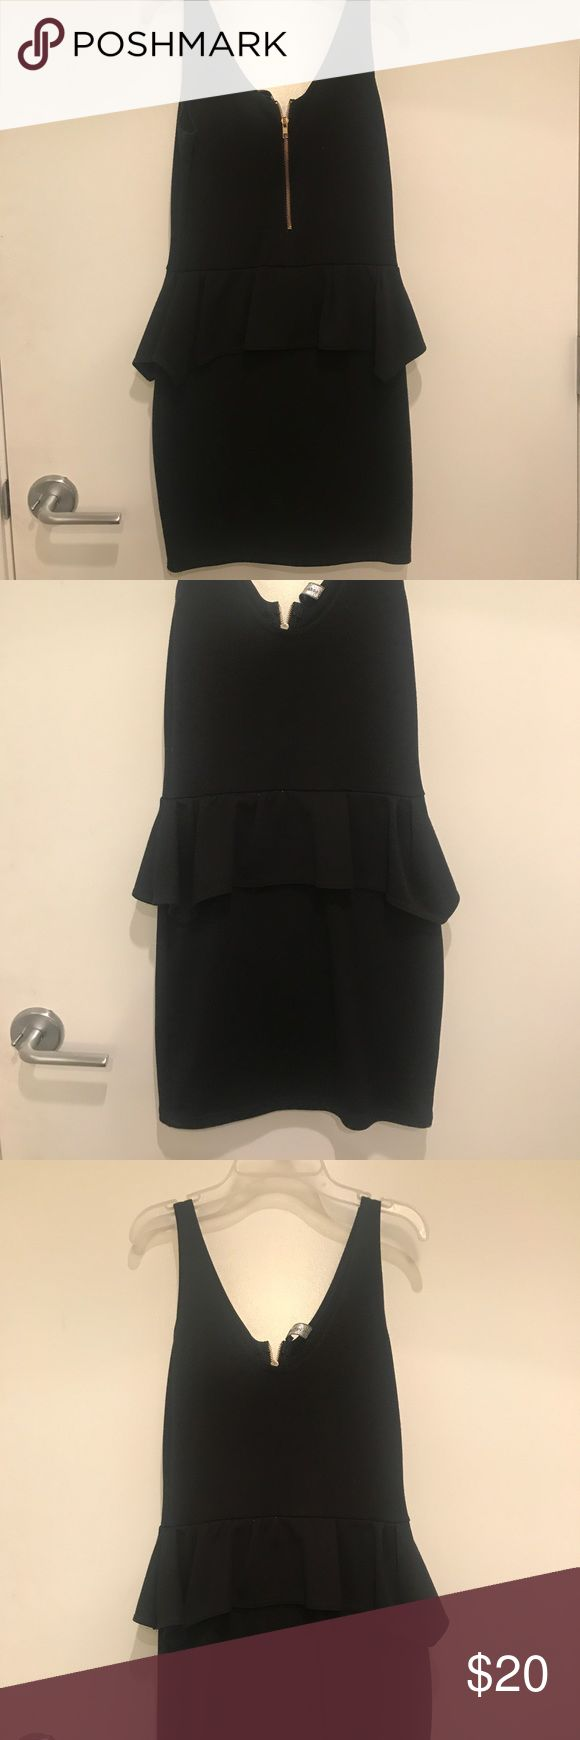 Black Peplum Dress Size M Black Peplum Dress Size M - zipper is the back of the dress. Very flattering! Dresses Mini